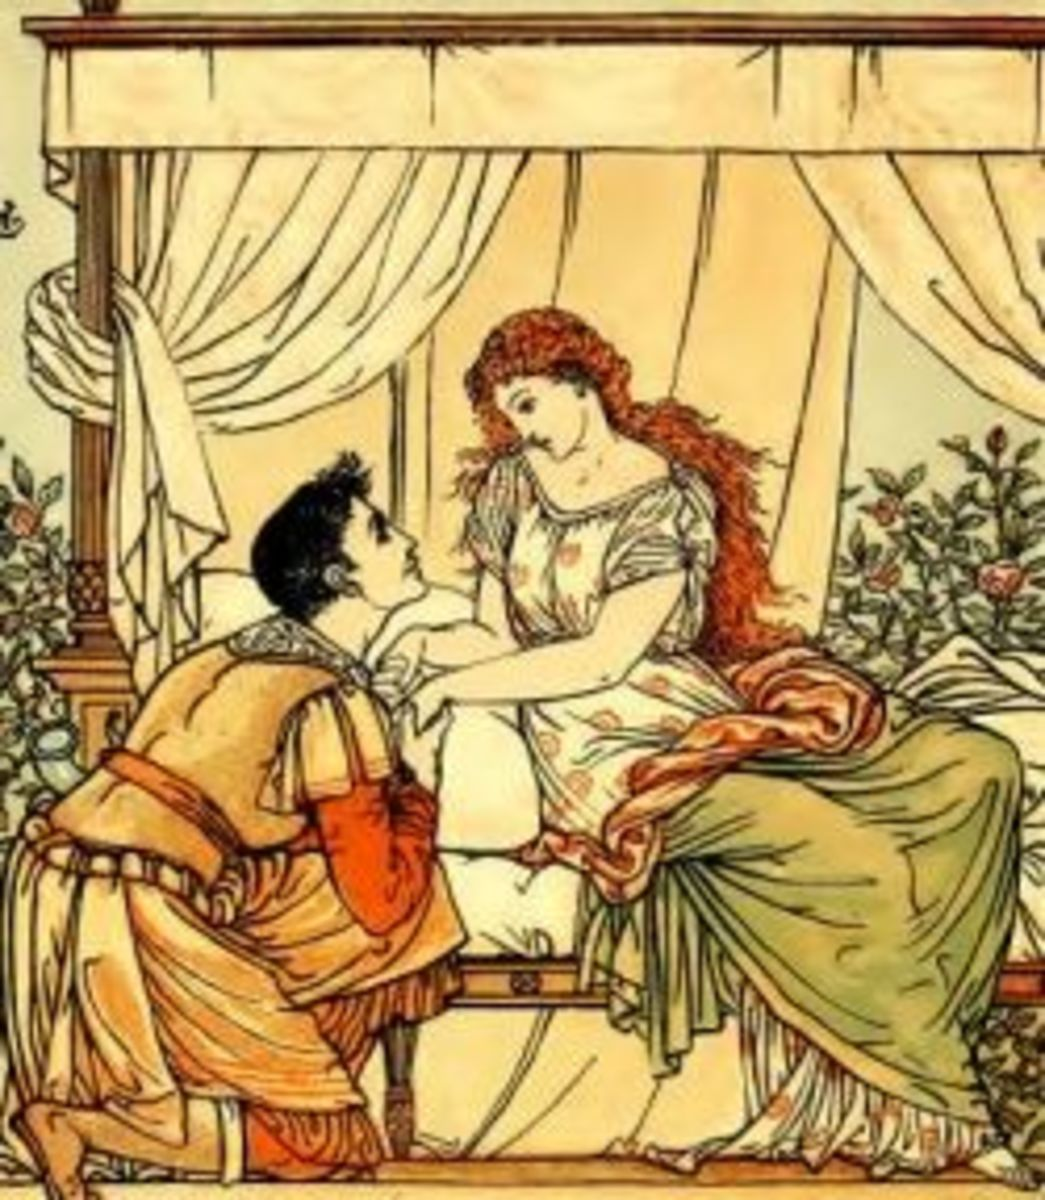 They fell in love (by Walter Crane)